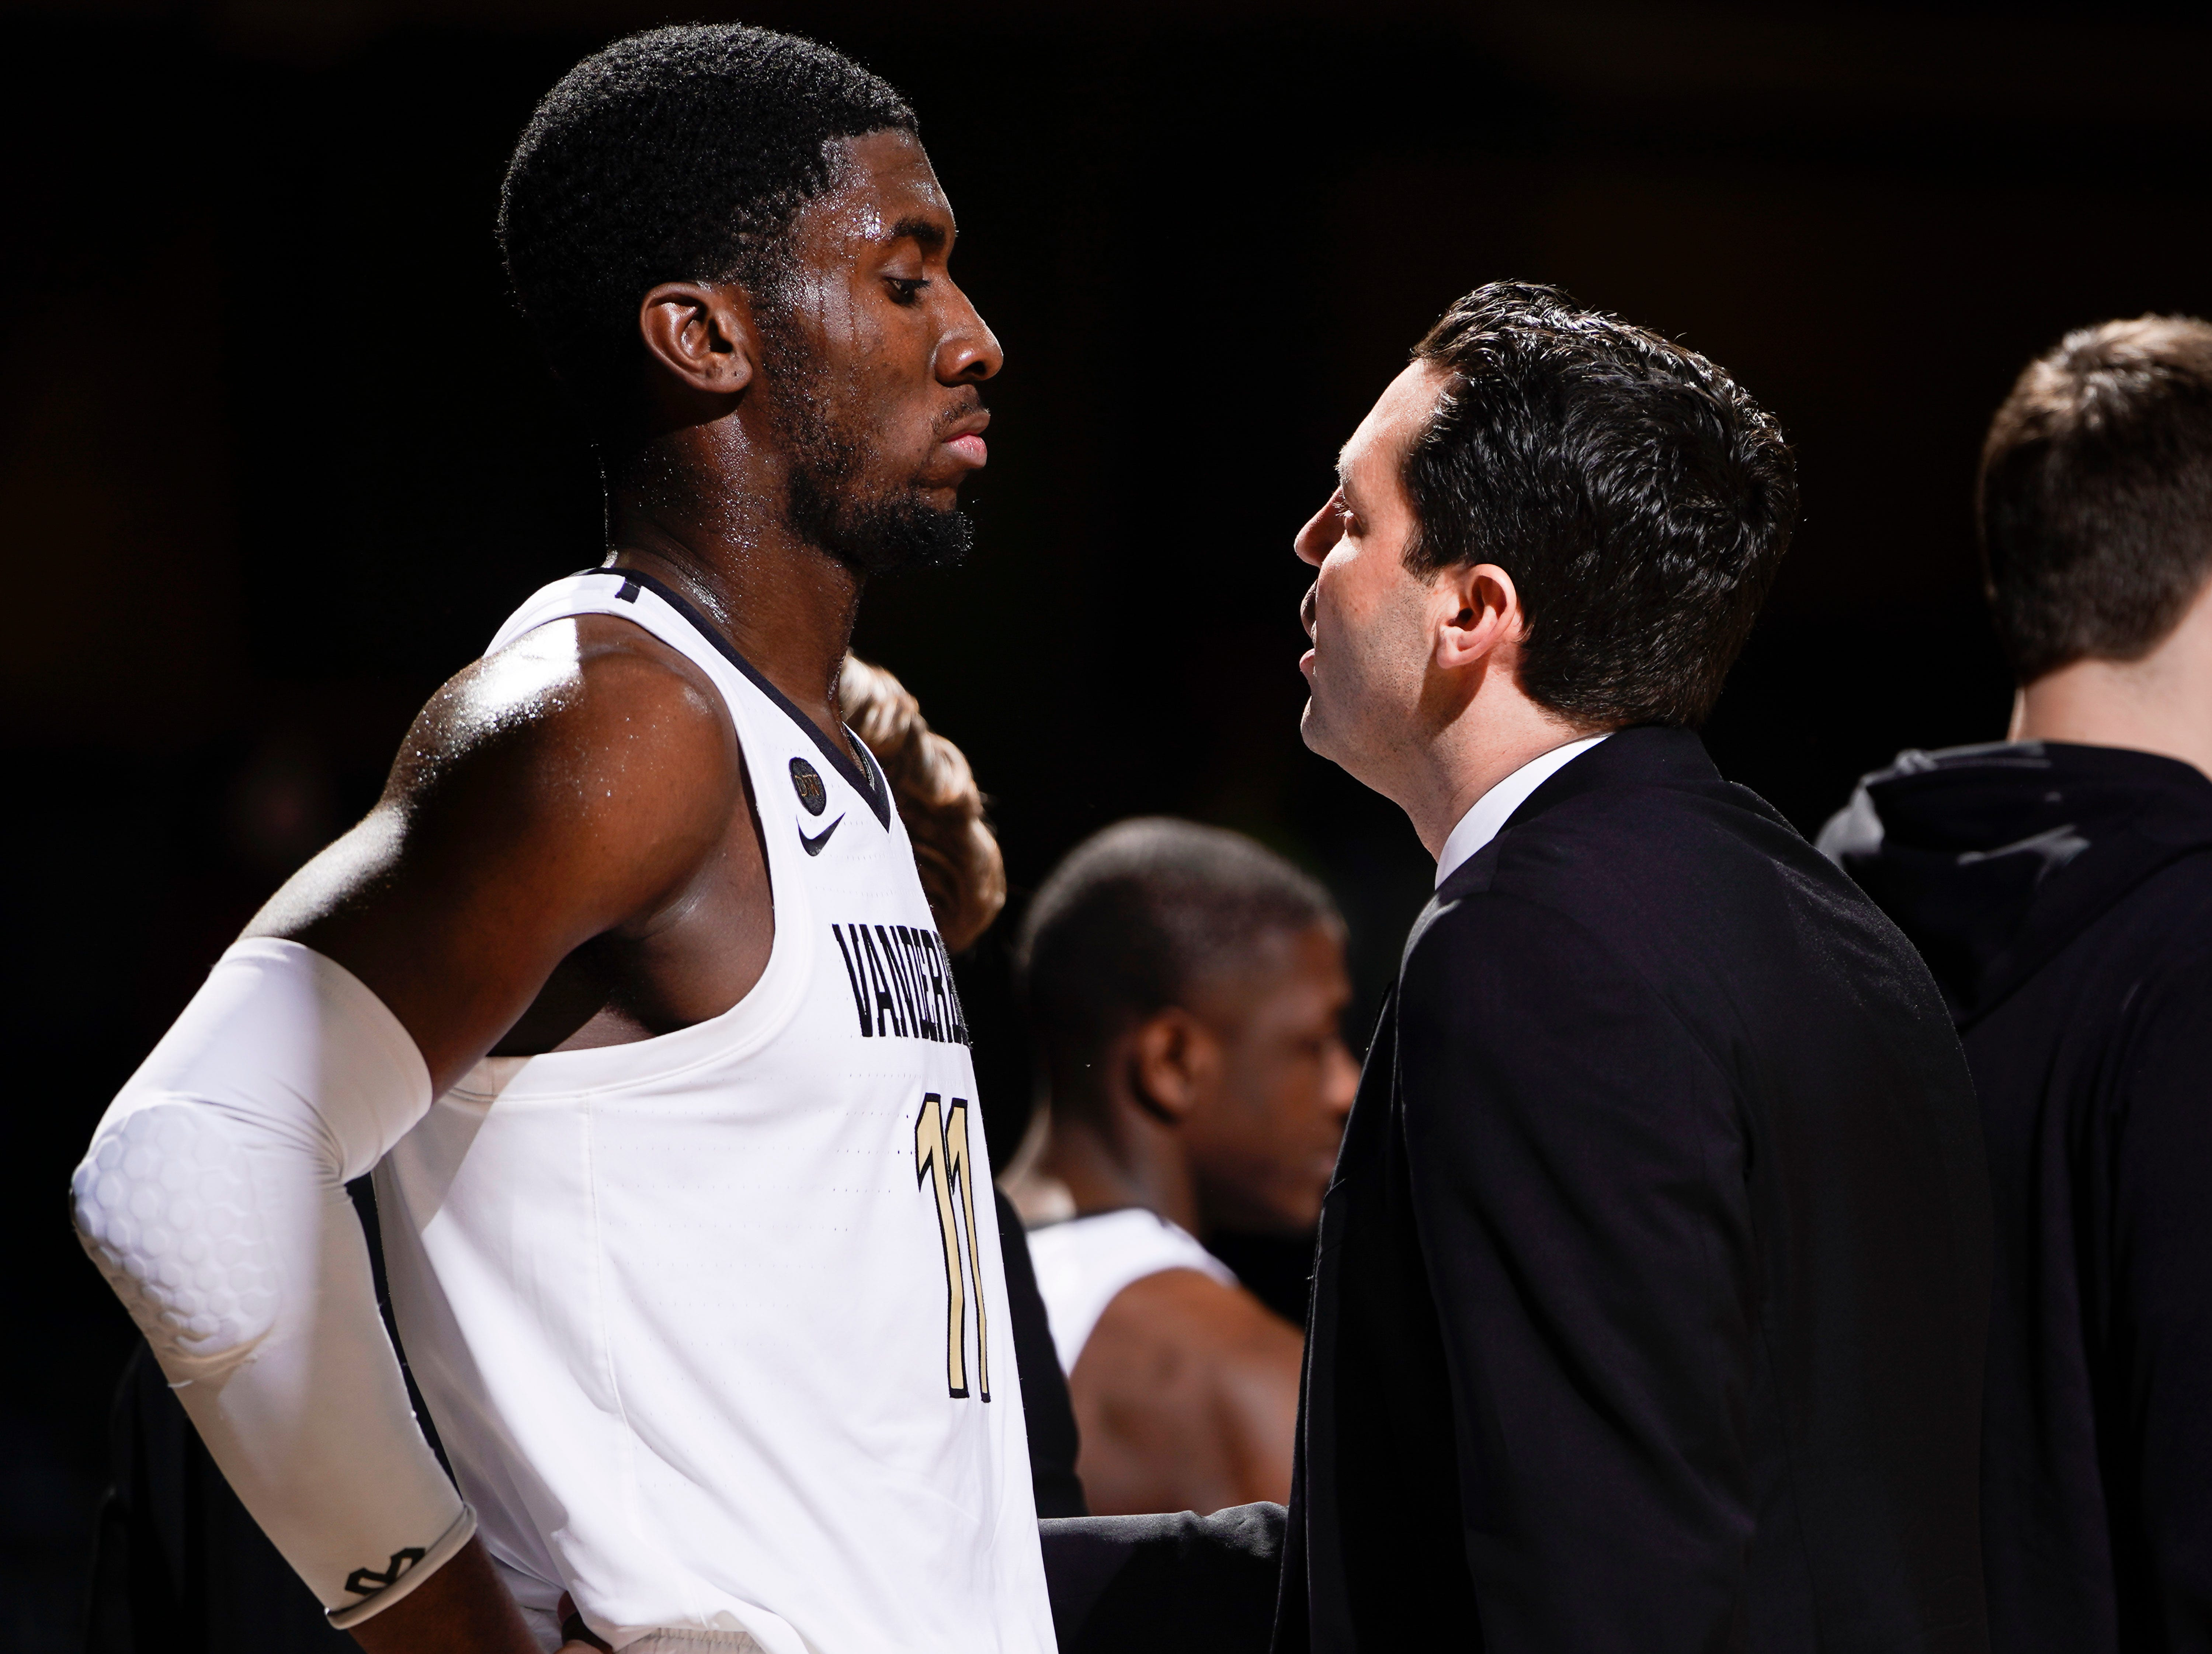 Vanderbilt forward Simisola Shittu (11) looks at head coach Bryce Drew as he gives him instructions during the second half of their game against Arkansas at Memorial Gym Wednesday, March 6, 2019 in Nashville, Tenn.